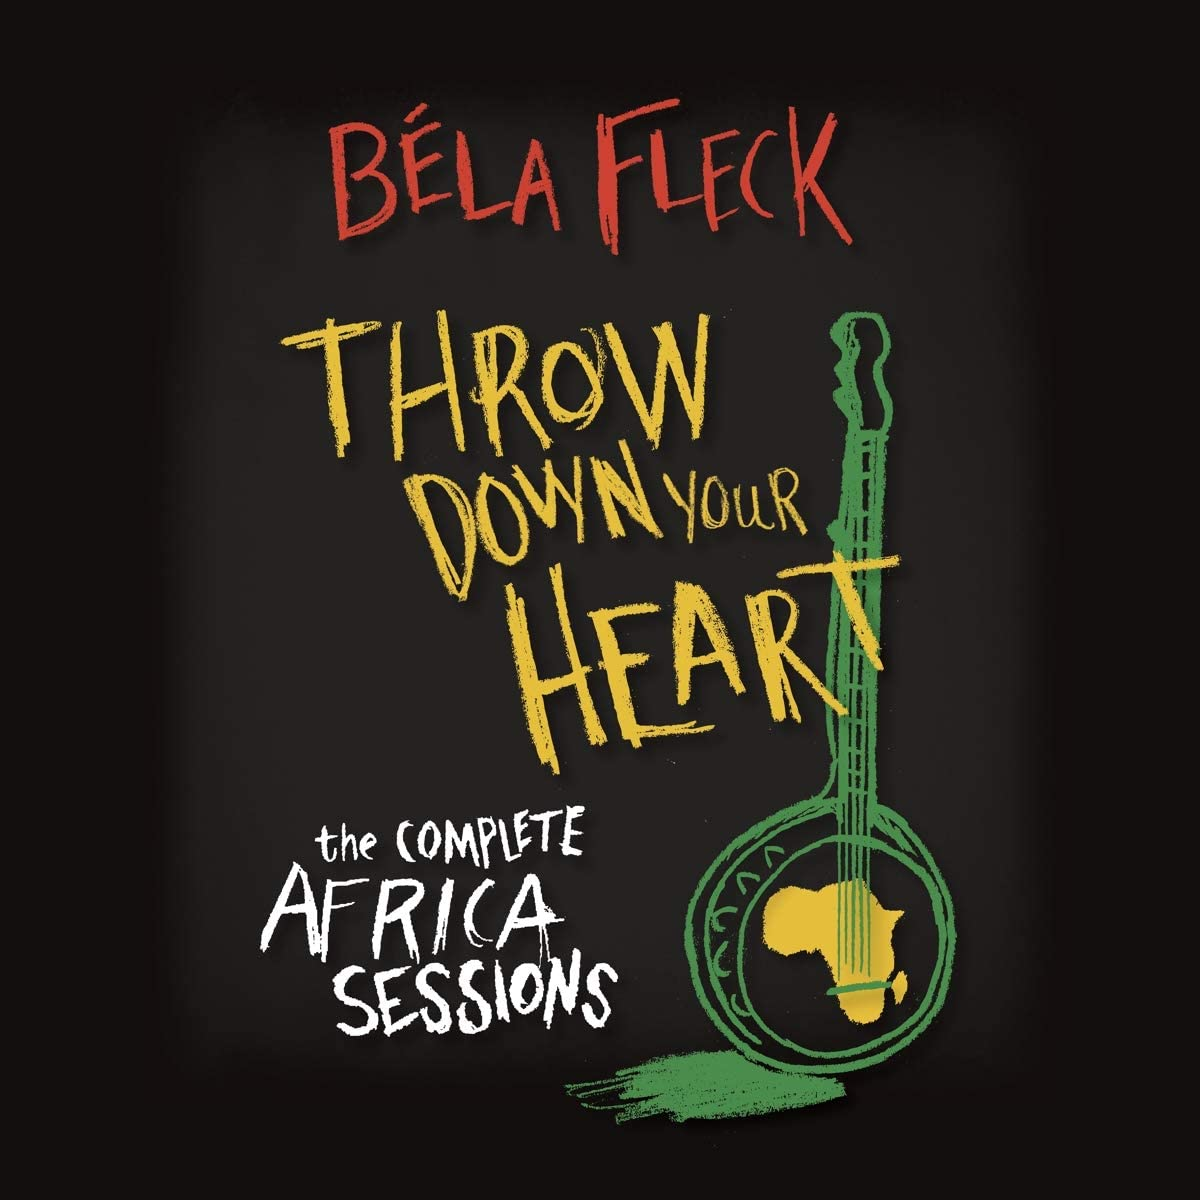 Fleck, Bela/Throw Down Your Heart (3CD/DVD) [CD with DVD]